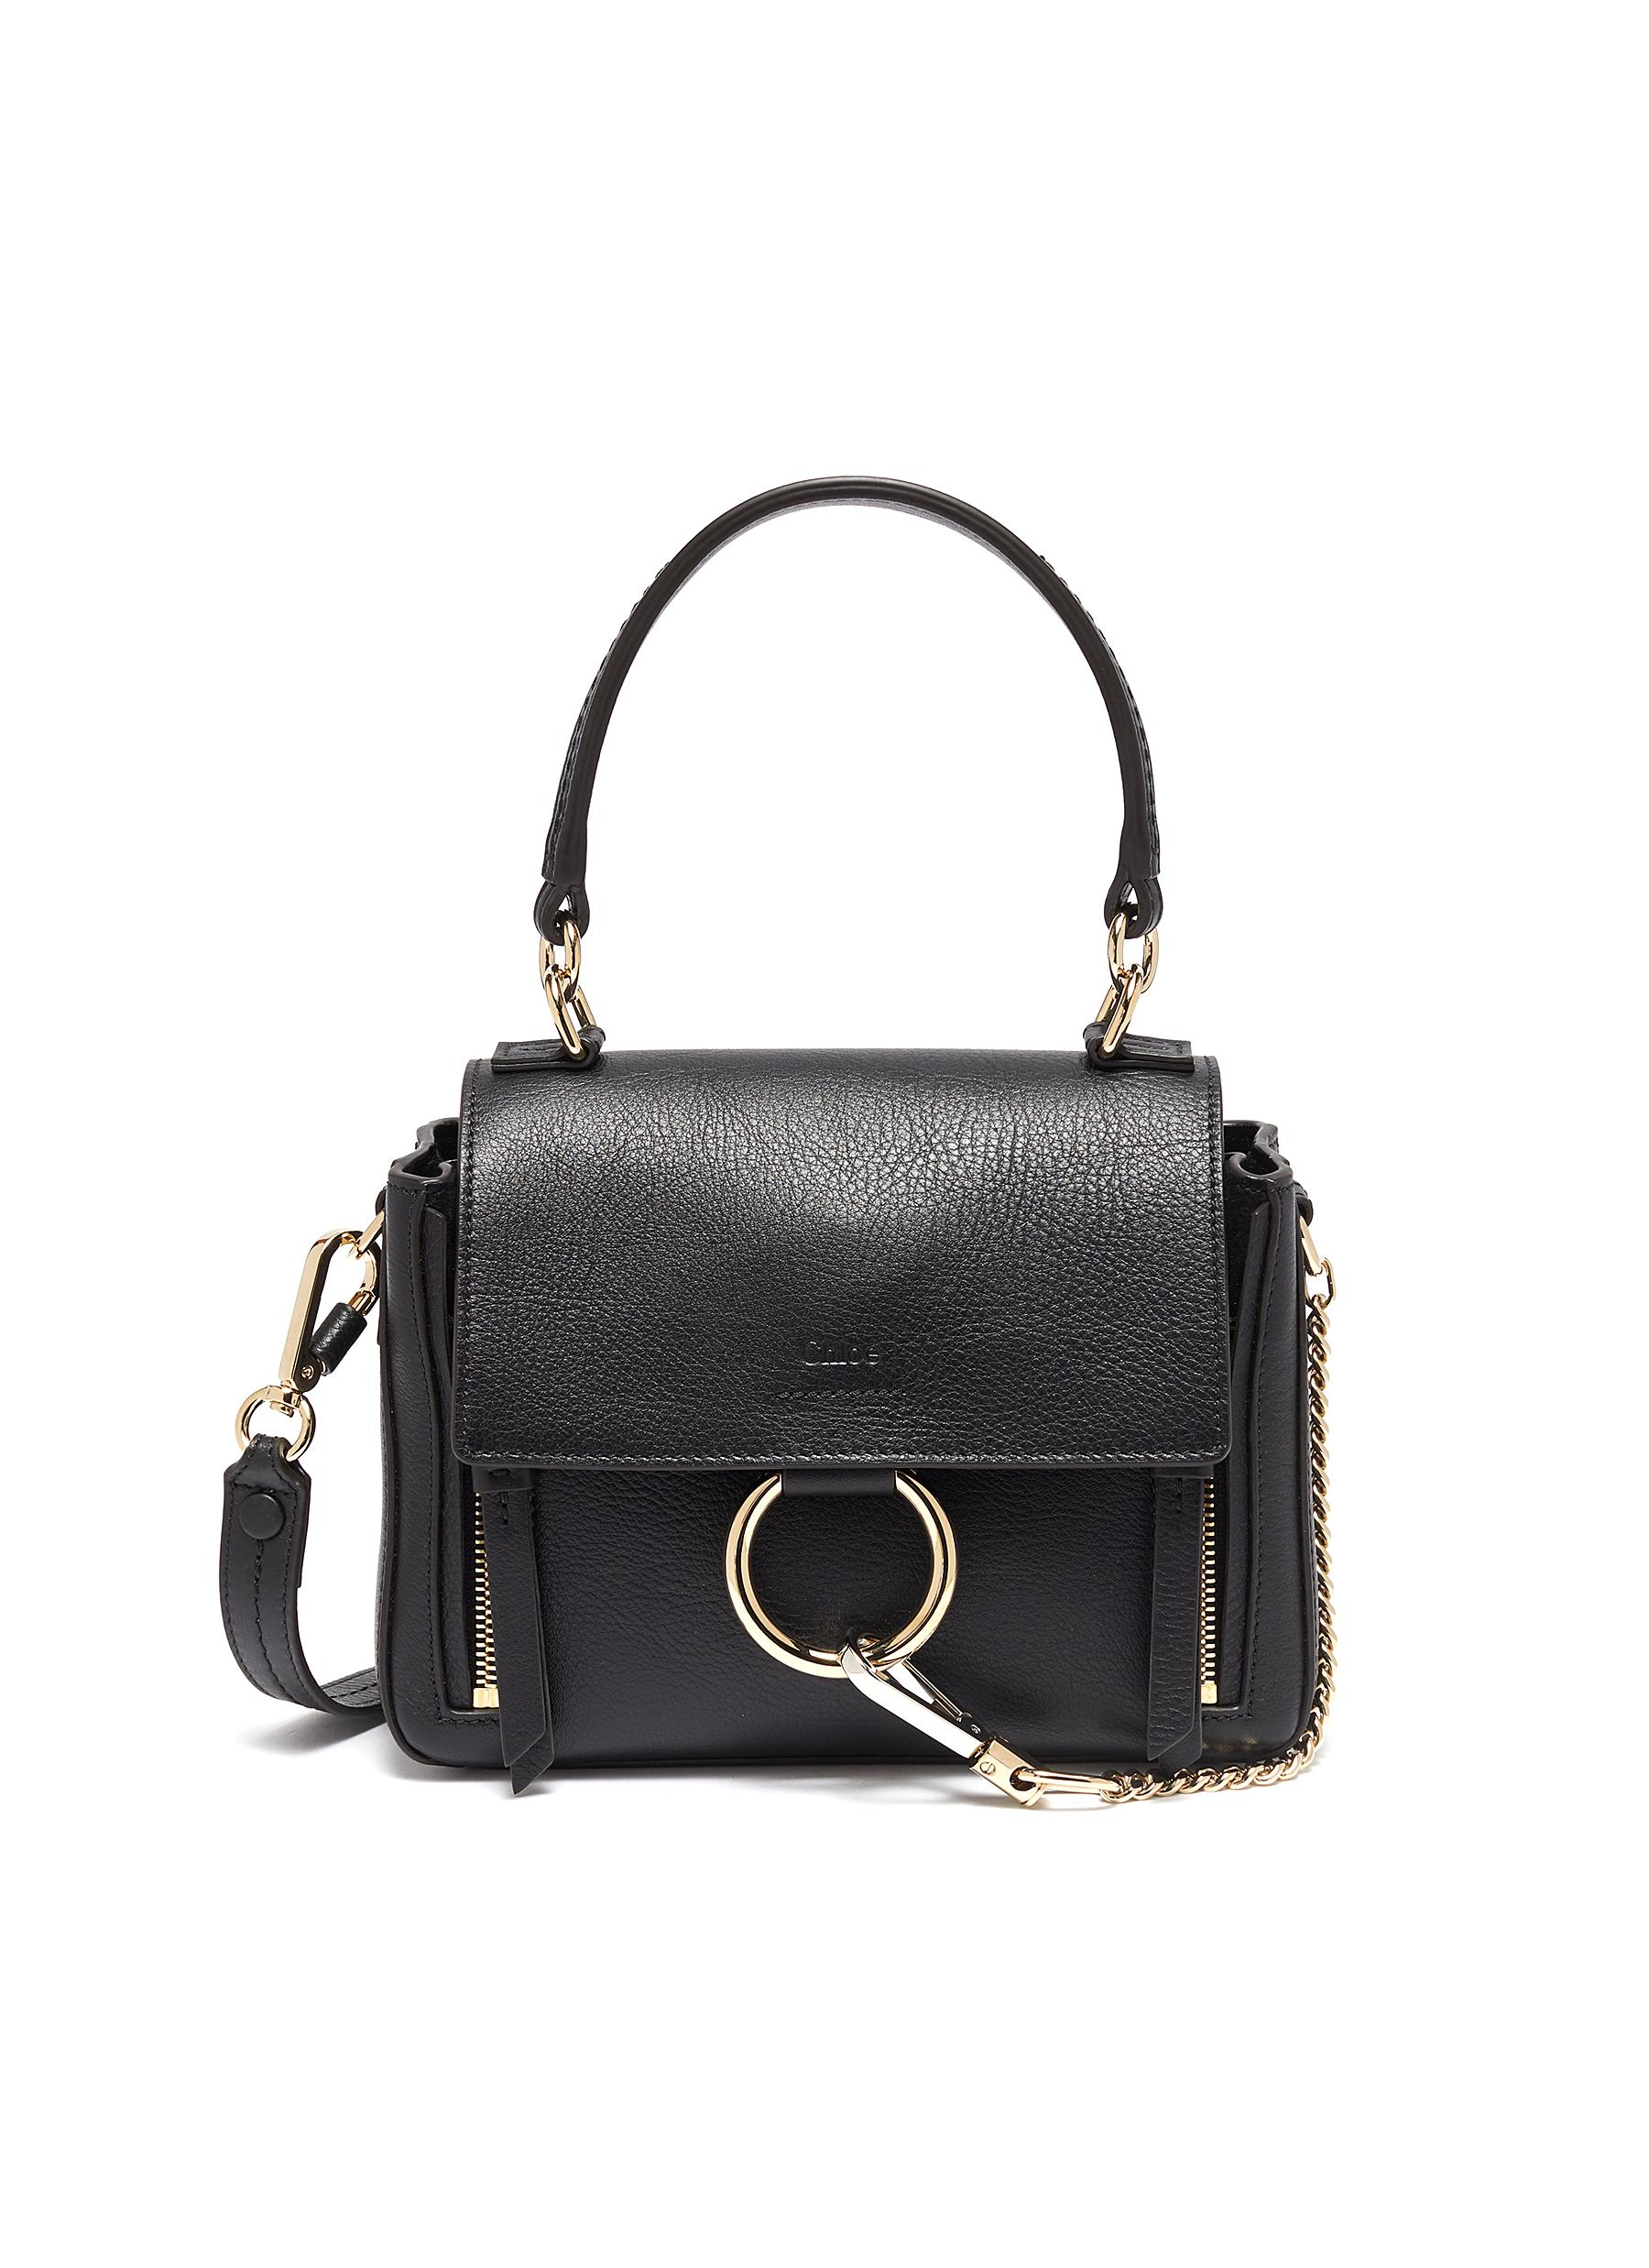 'Faye Day' mini leather shoulder bag